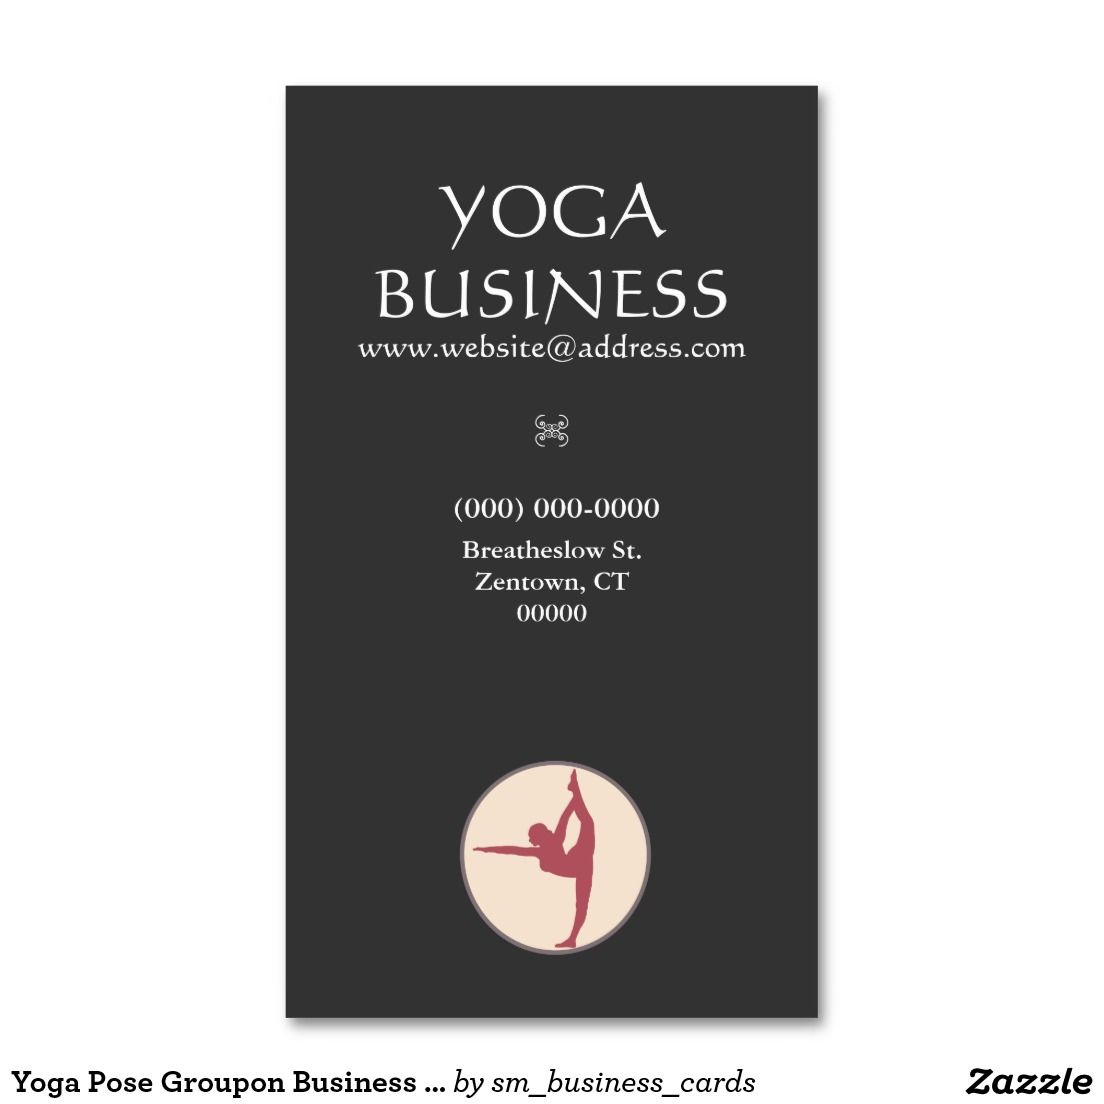 Yoga Pose Groupon Business Card | Yoga poses, Business cards and Yoga